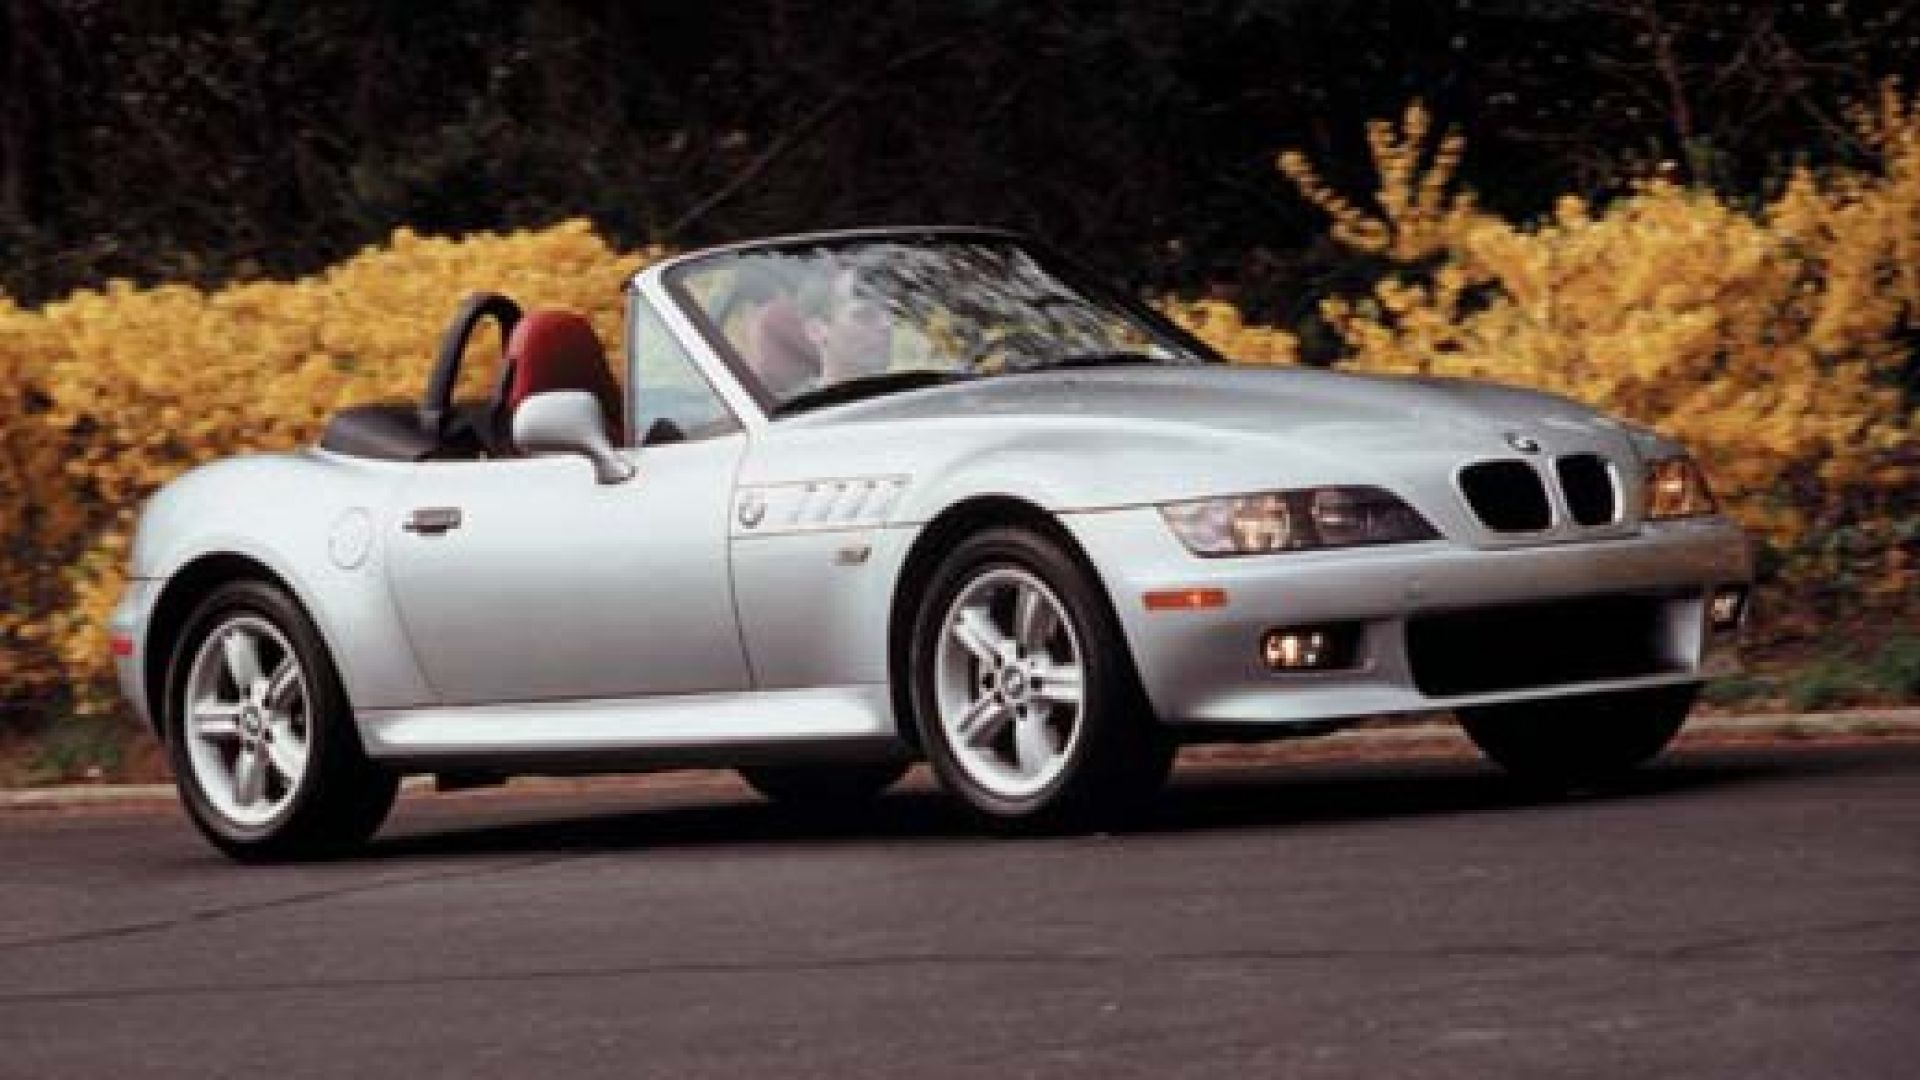 prova su strada bmw z3 roadster my 1999 motorbox. Black Bedroom Furniture Sets. Home Design Ideas